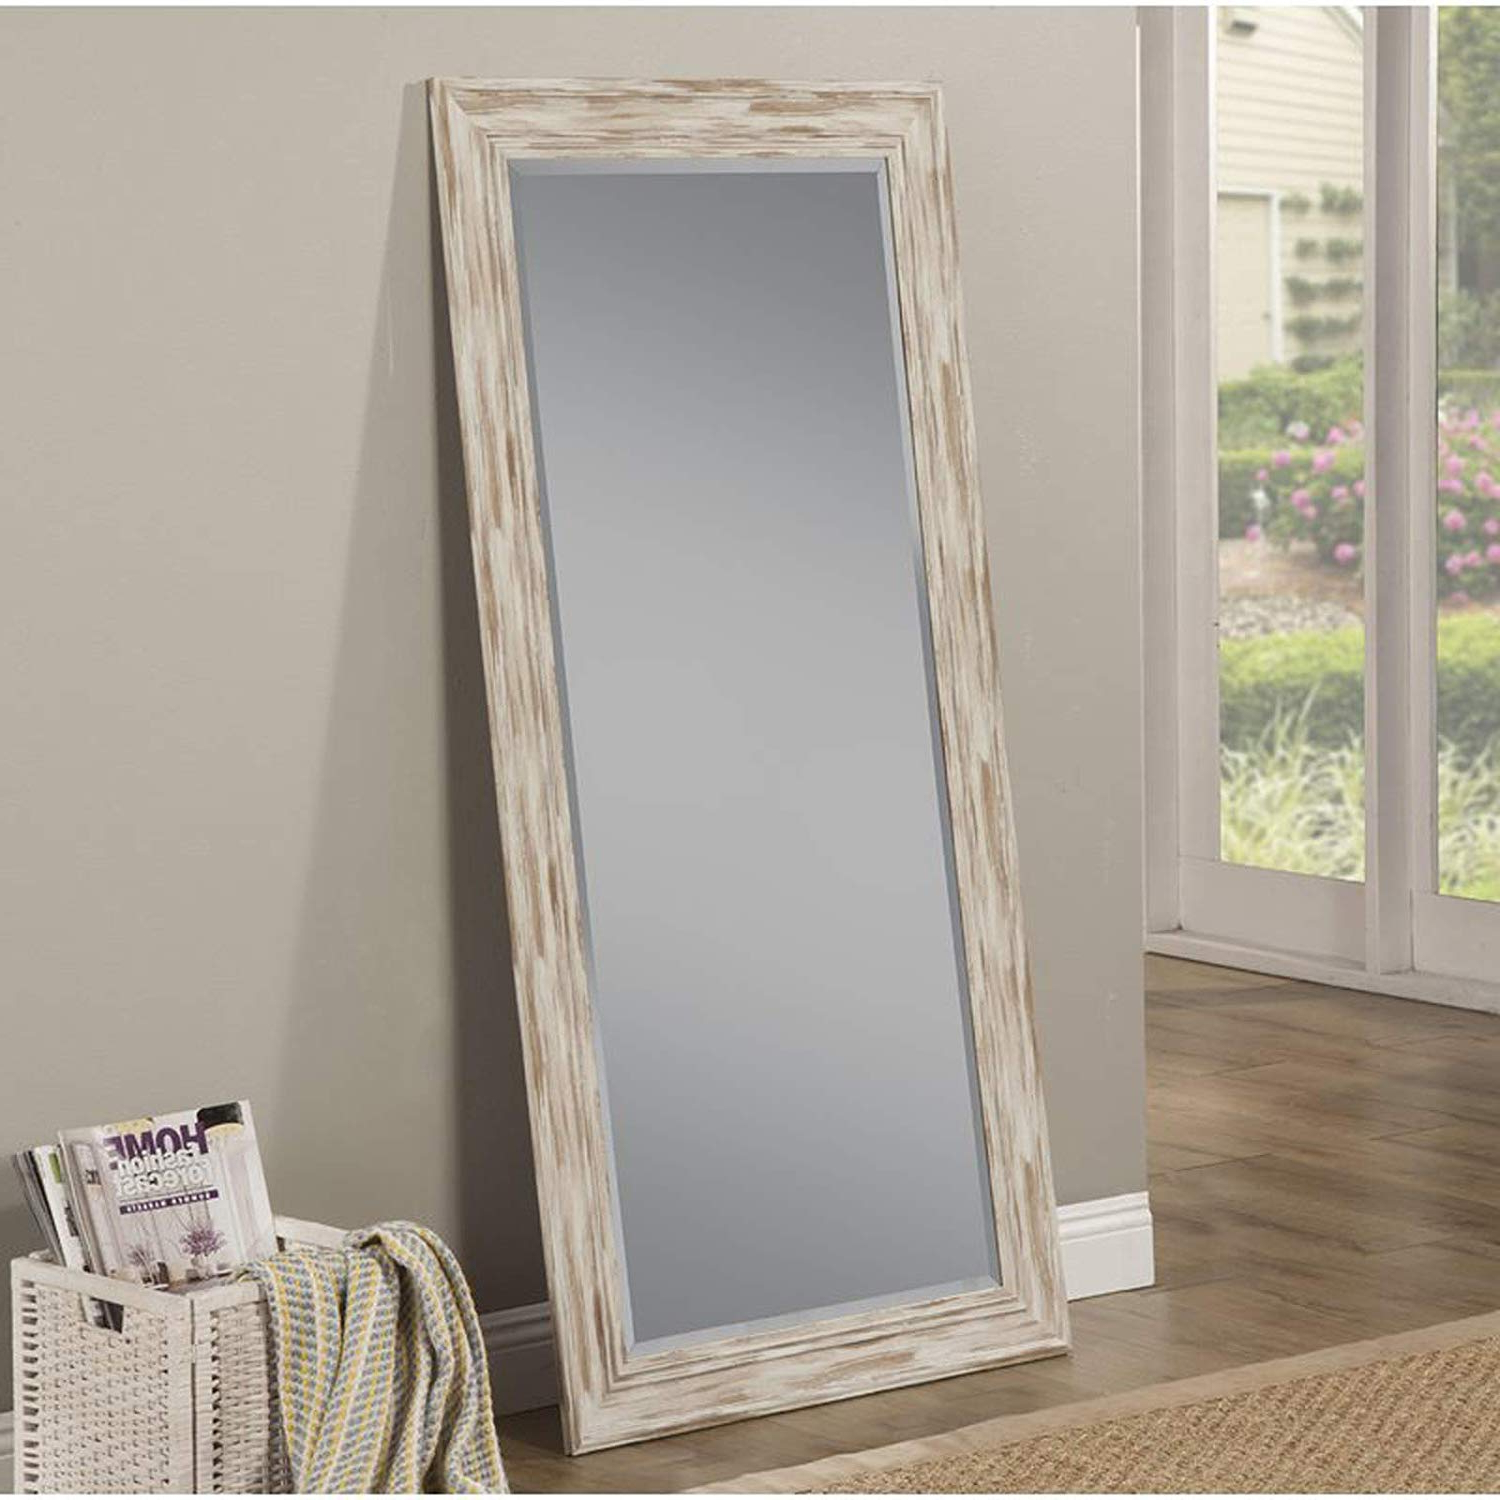 Full Length Wall Mirrors Intended For Most Popular Full Length Wall Mirror – Rustic Rectangular Shape Horizontal & Vertical  Mirror – Can Be Use In Living Room, Bedroom, Entryway Or Bathroom (Antique (View 8 of 20)